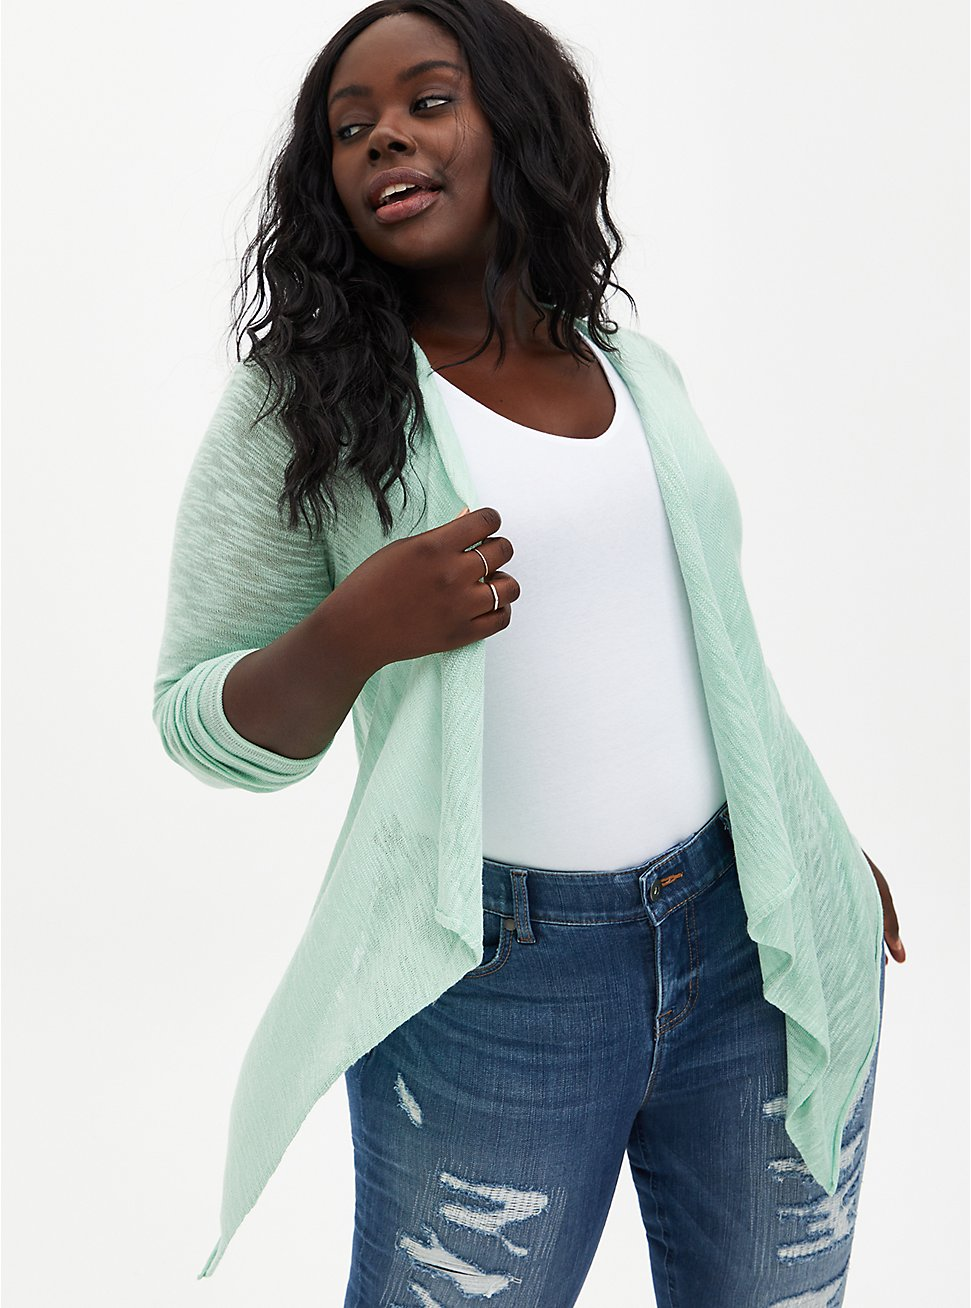 Jade Green Drape Open Cardigan Sweater, GRAYED JADE, hi-res